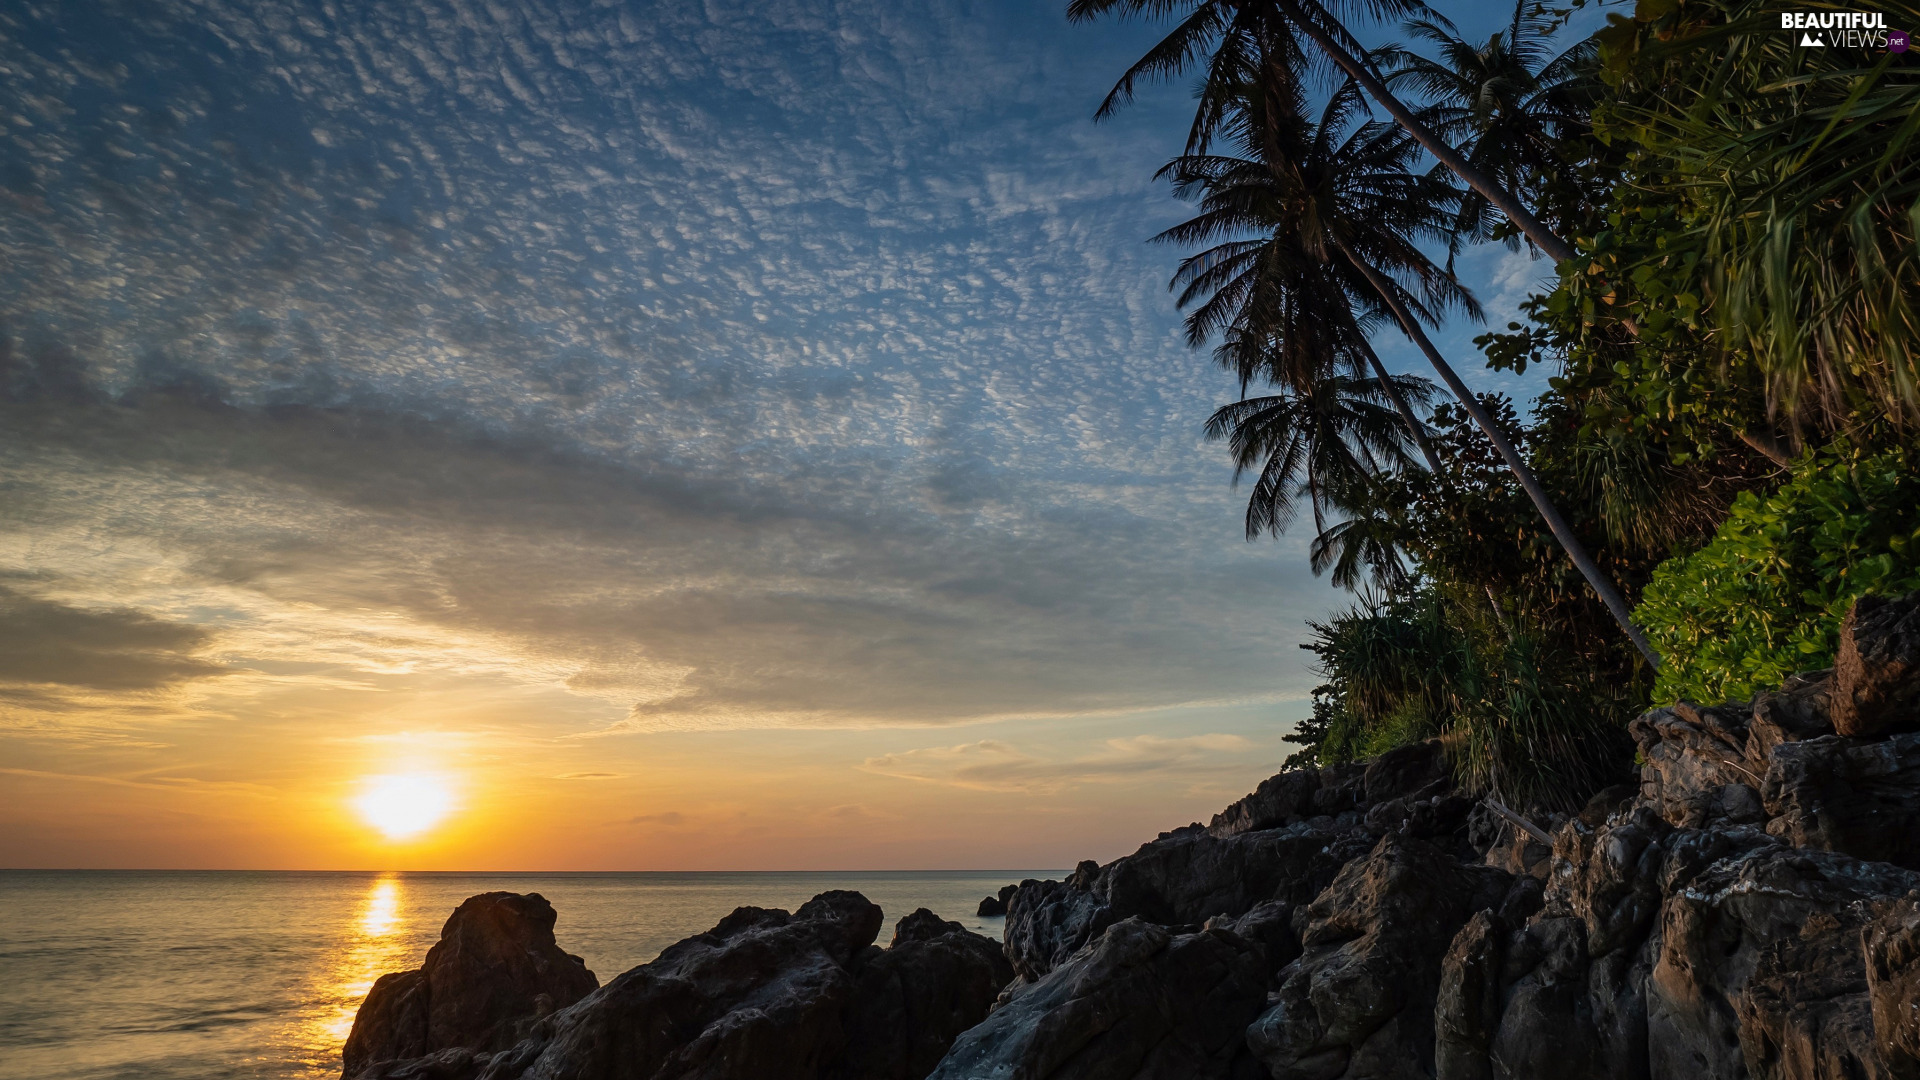 Great Sunsets, clouds, rocks, Palms, sea